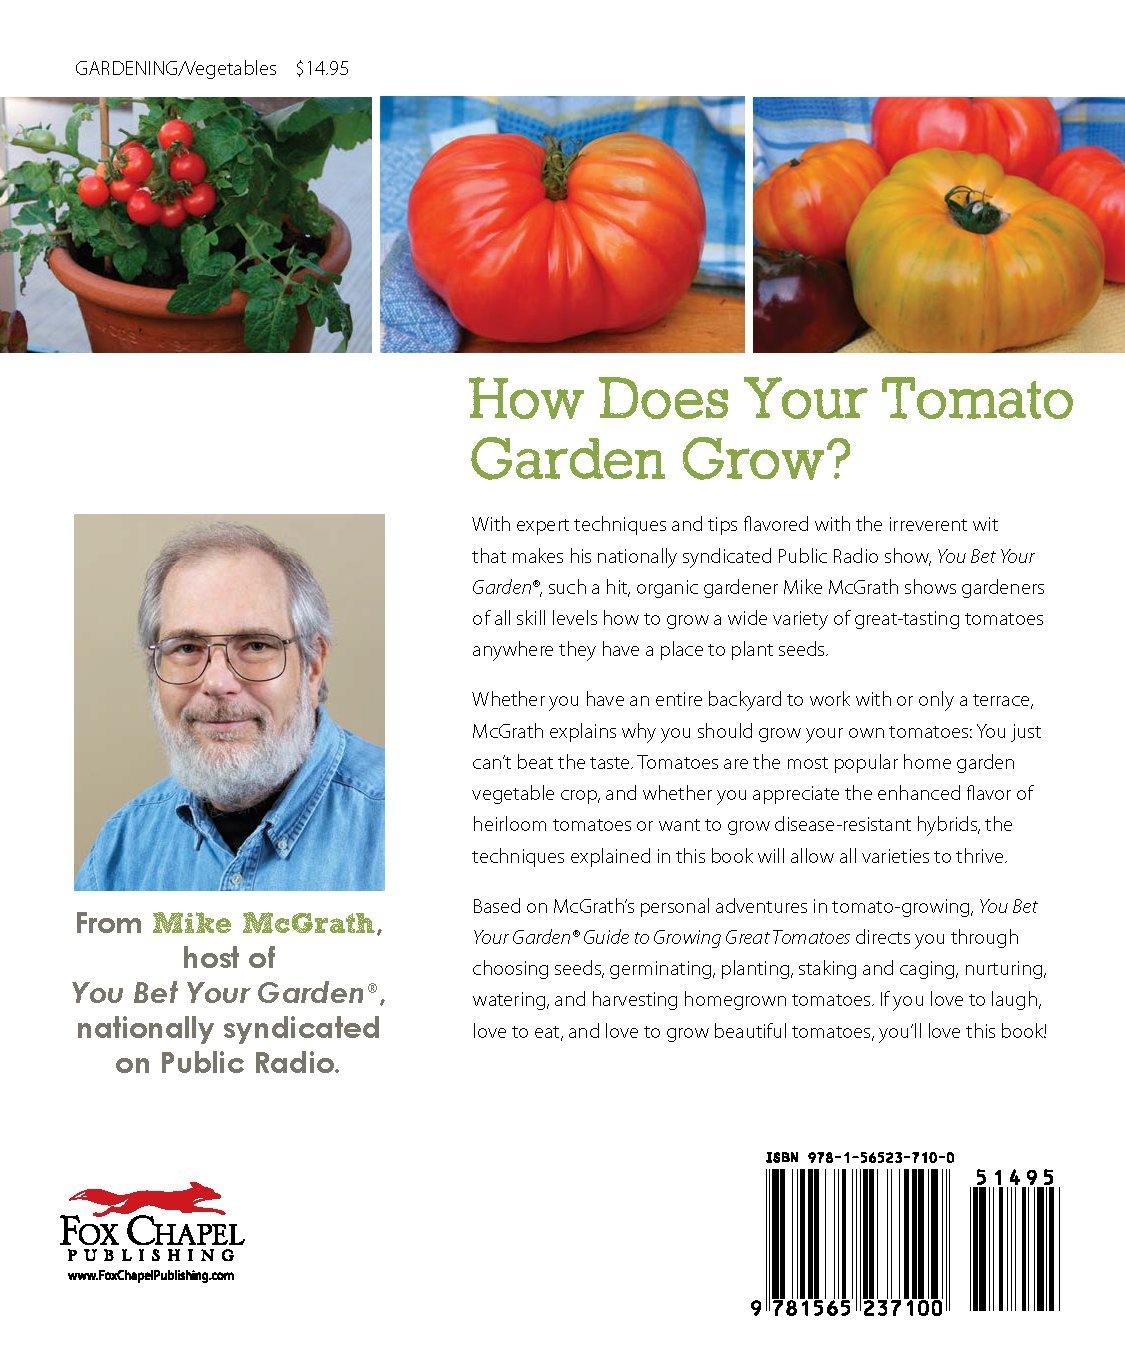 You Bet Your Garden Guide To Growing Great Tomatoes: How To Grow  Great Tasting Tomatoes In Any Backyard, Garden, Or Container: Mike McGrath:  0858924003382: ...